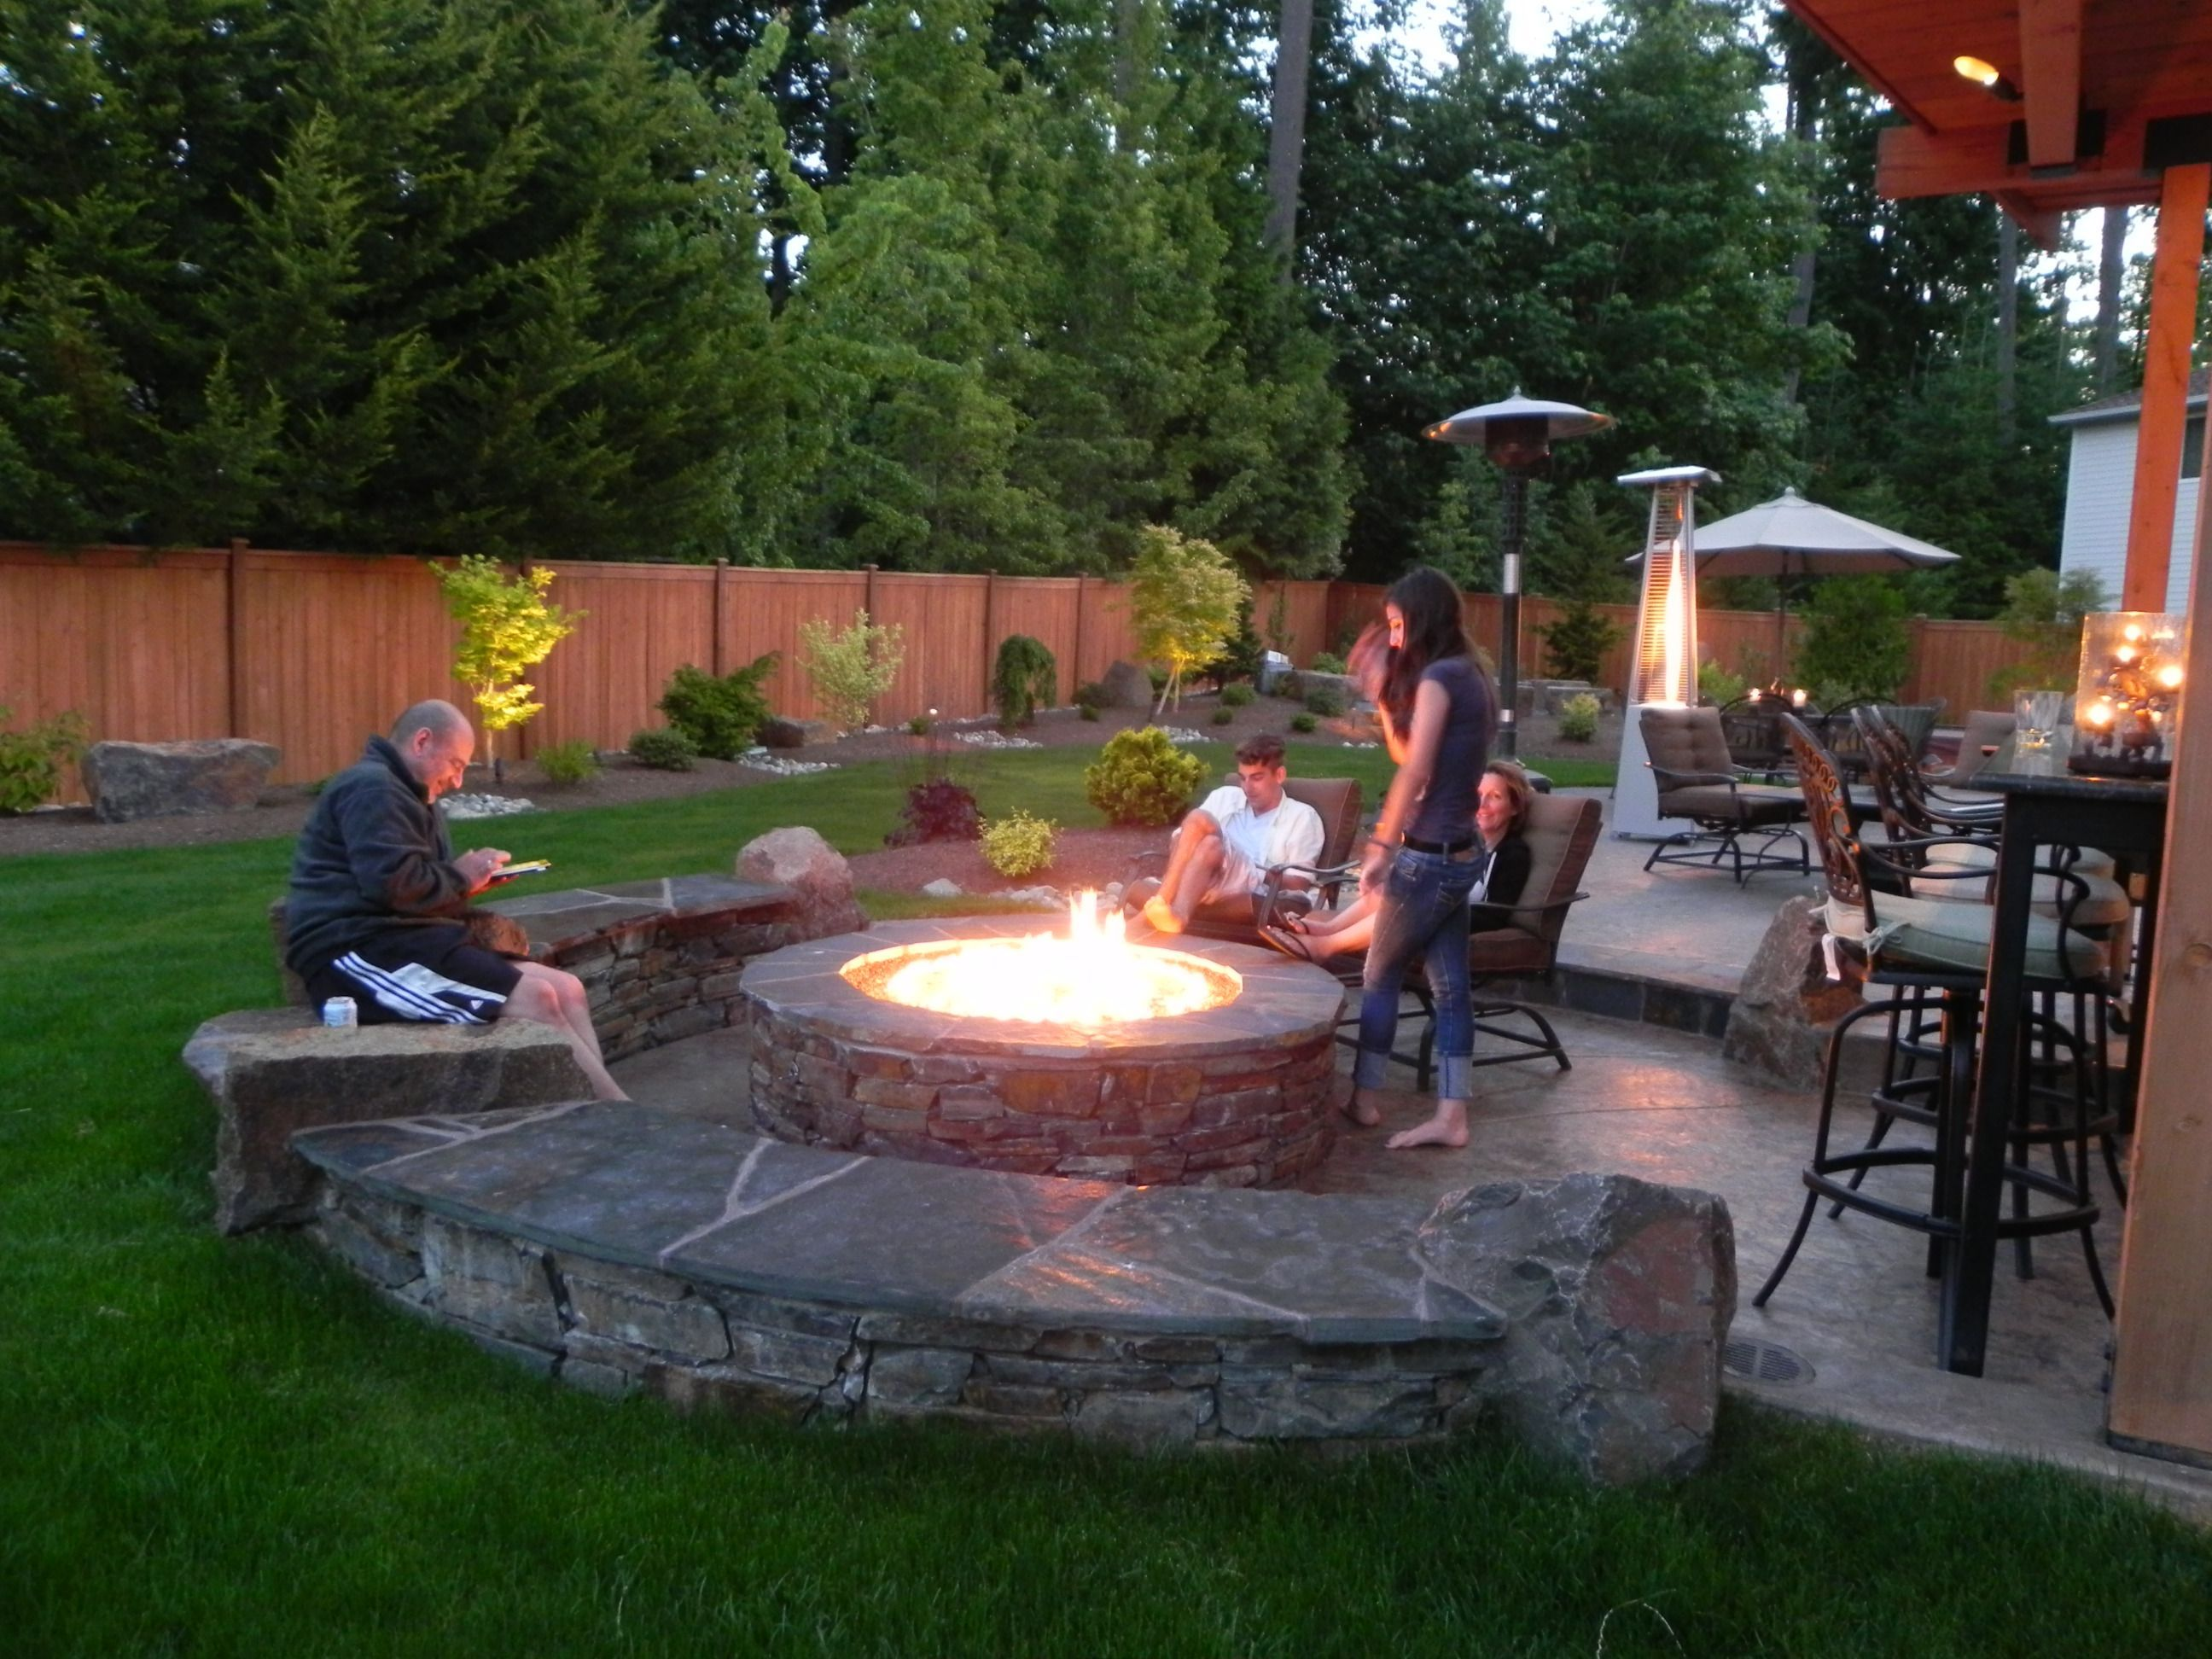 Good Fascinating Fire Pit Ideas Outdoor Decoration For Backyard : Inspirational  Backyard Garden Seating With Cool Modern Outdoor Furniture On The Patio ...